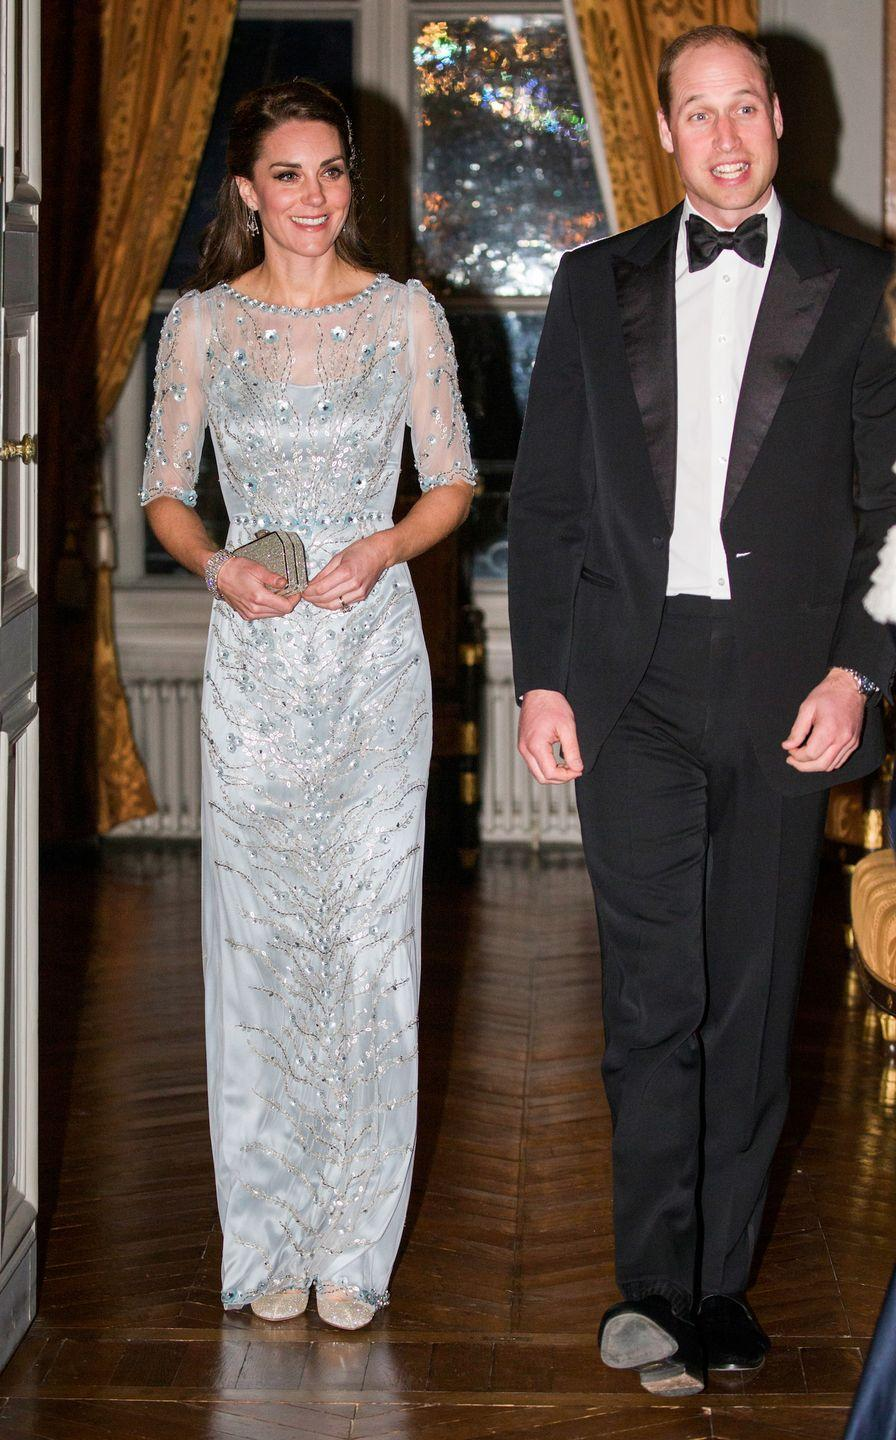 <p>For the dinner, Duchess Kate changes into a stunning Jenny Packham dress while William matches her elegance by wearing a tux.</p>